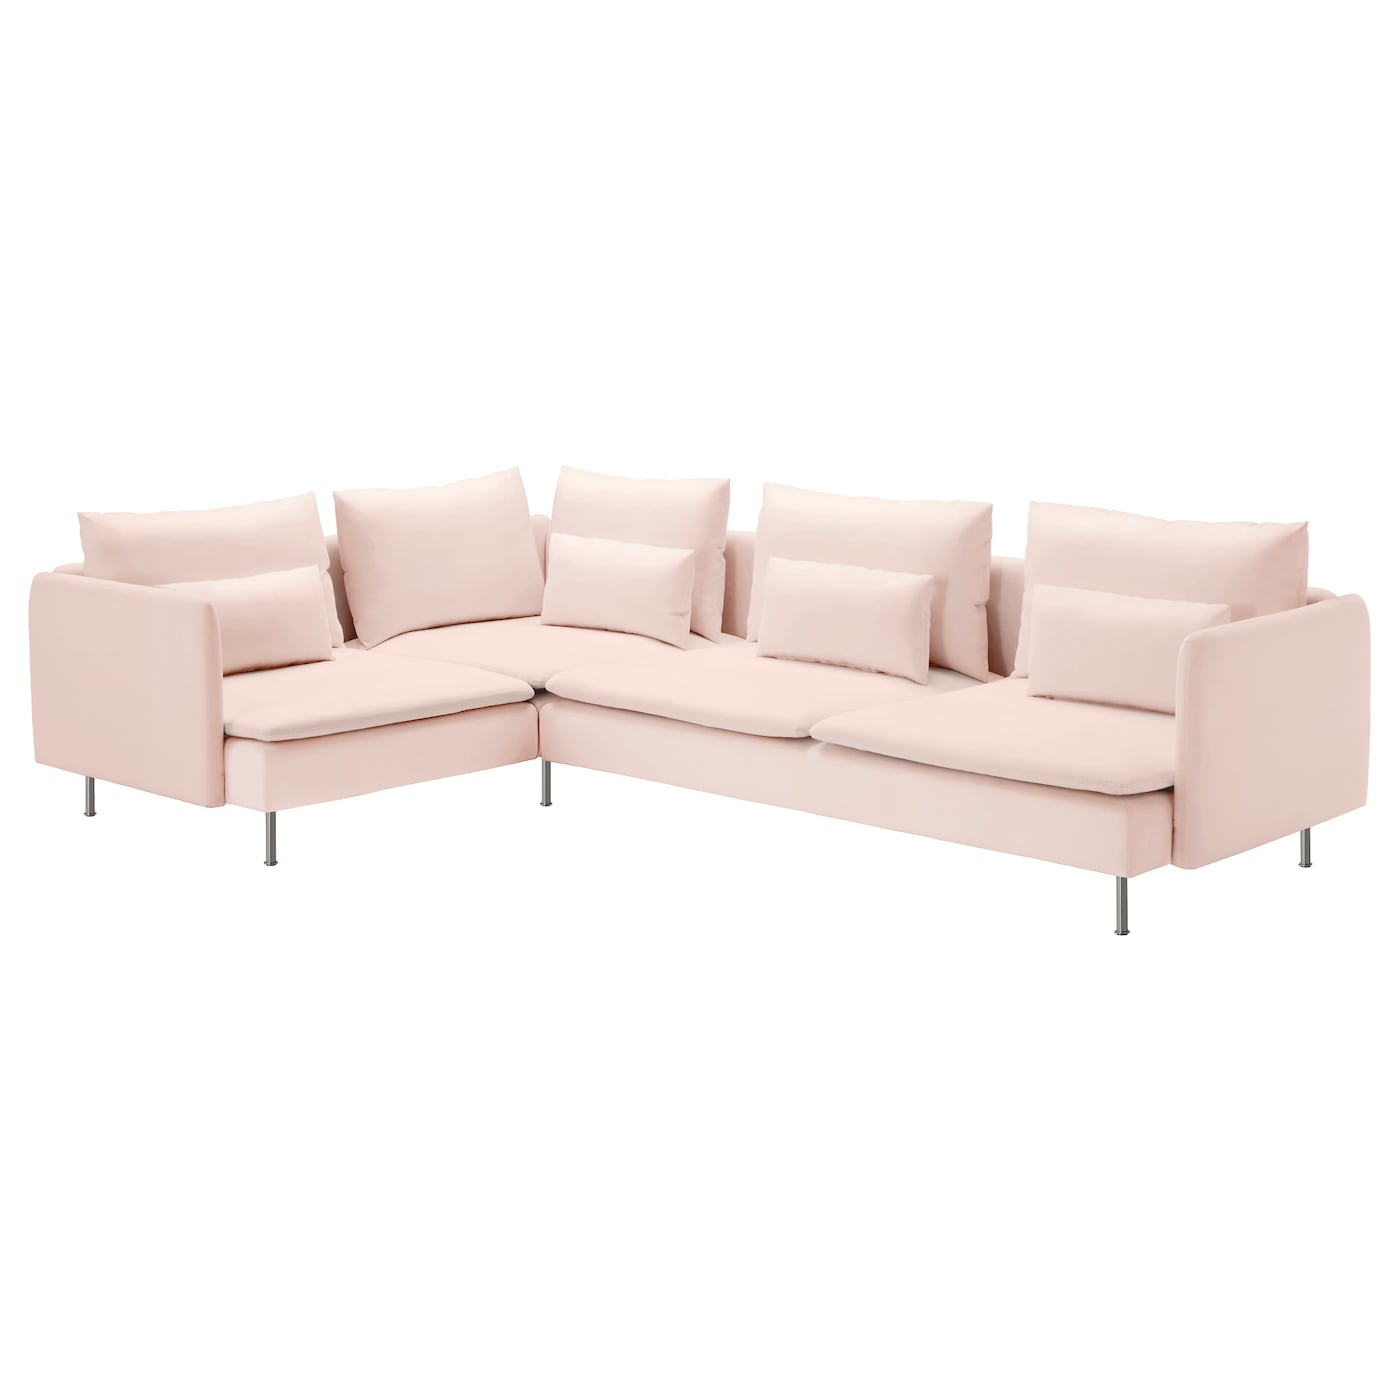 s derhamn corner sofa 2 1 samsta light pink 291x198 cm ikea. Black Bedroom Furniture Sets. Home Design Ideas